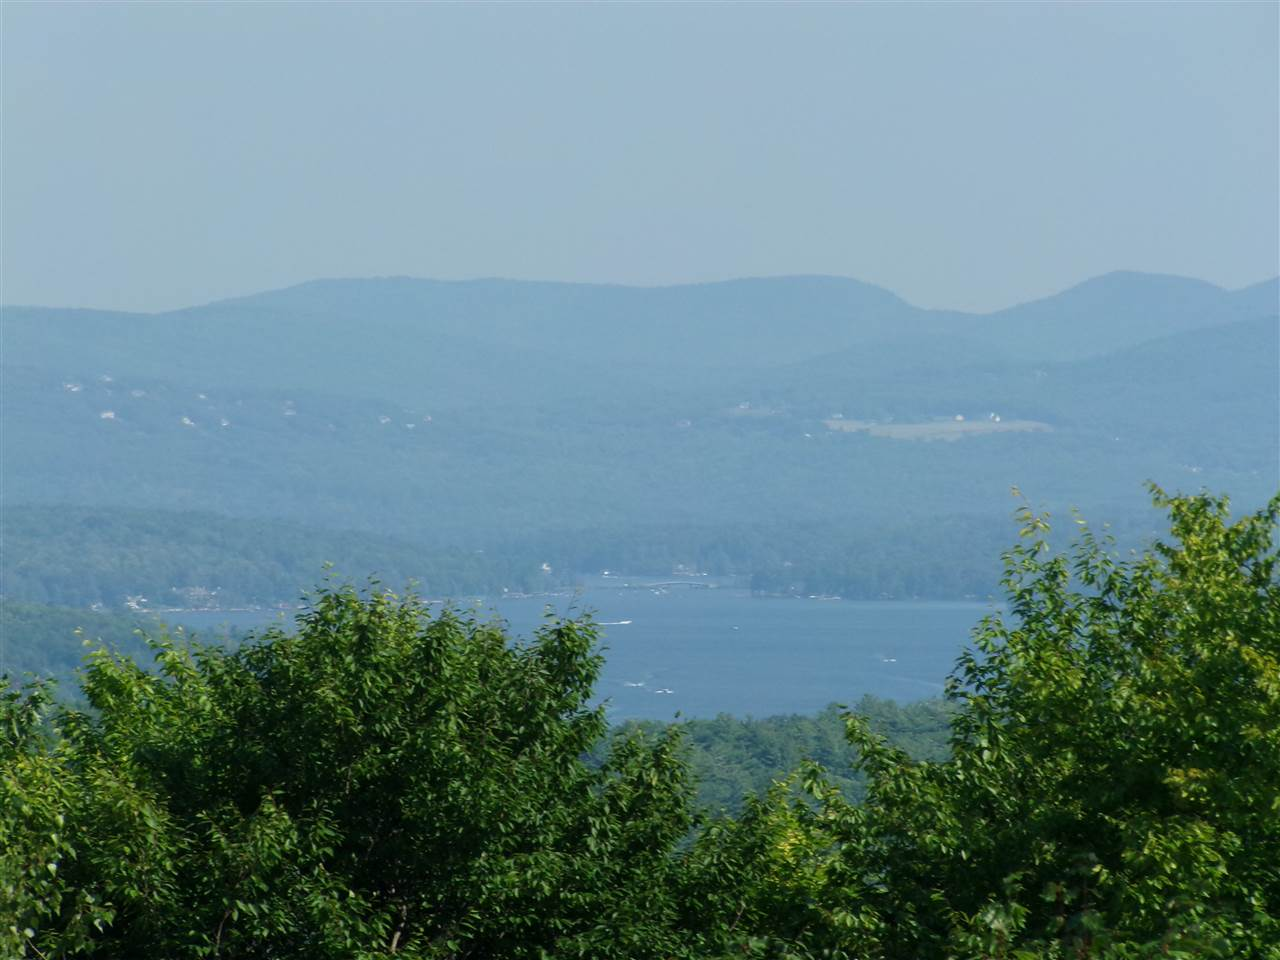 Photo of 5 Skywatch Road Center Harbor NH 03226